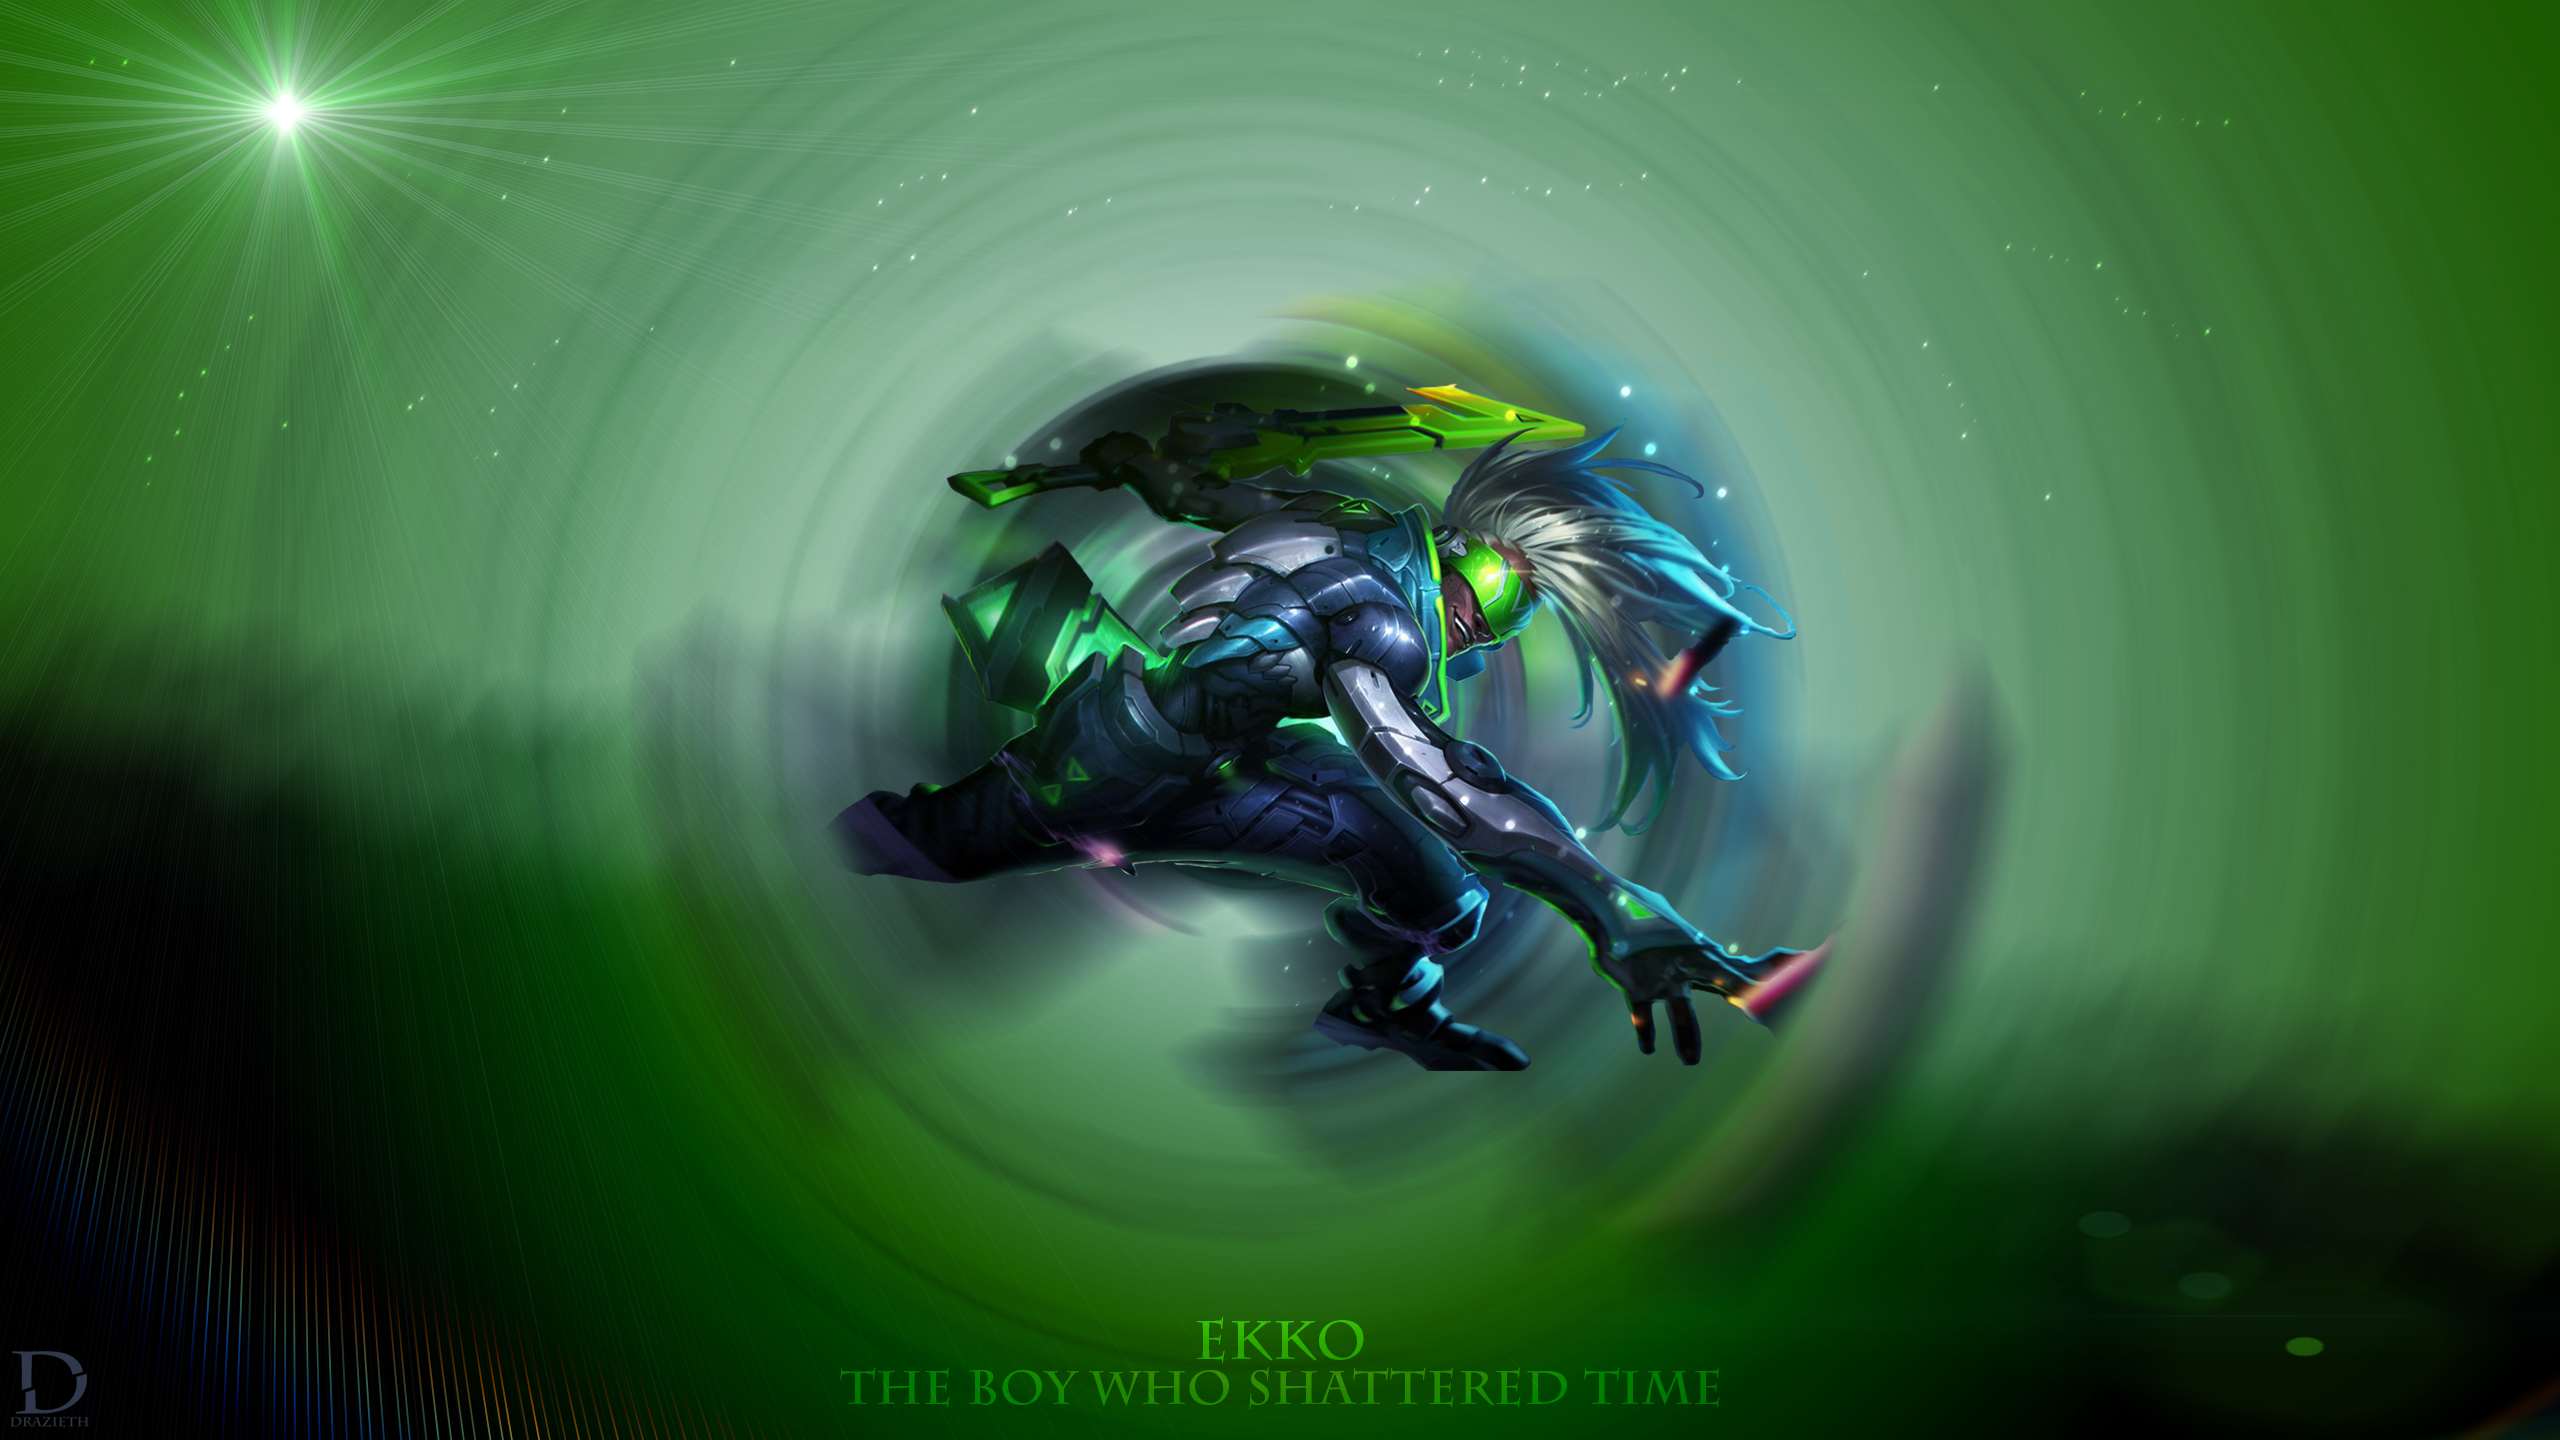 Project Ekko wallpaper